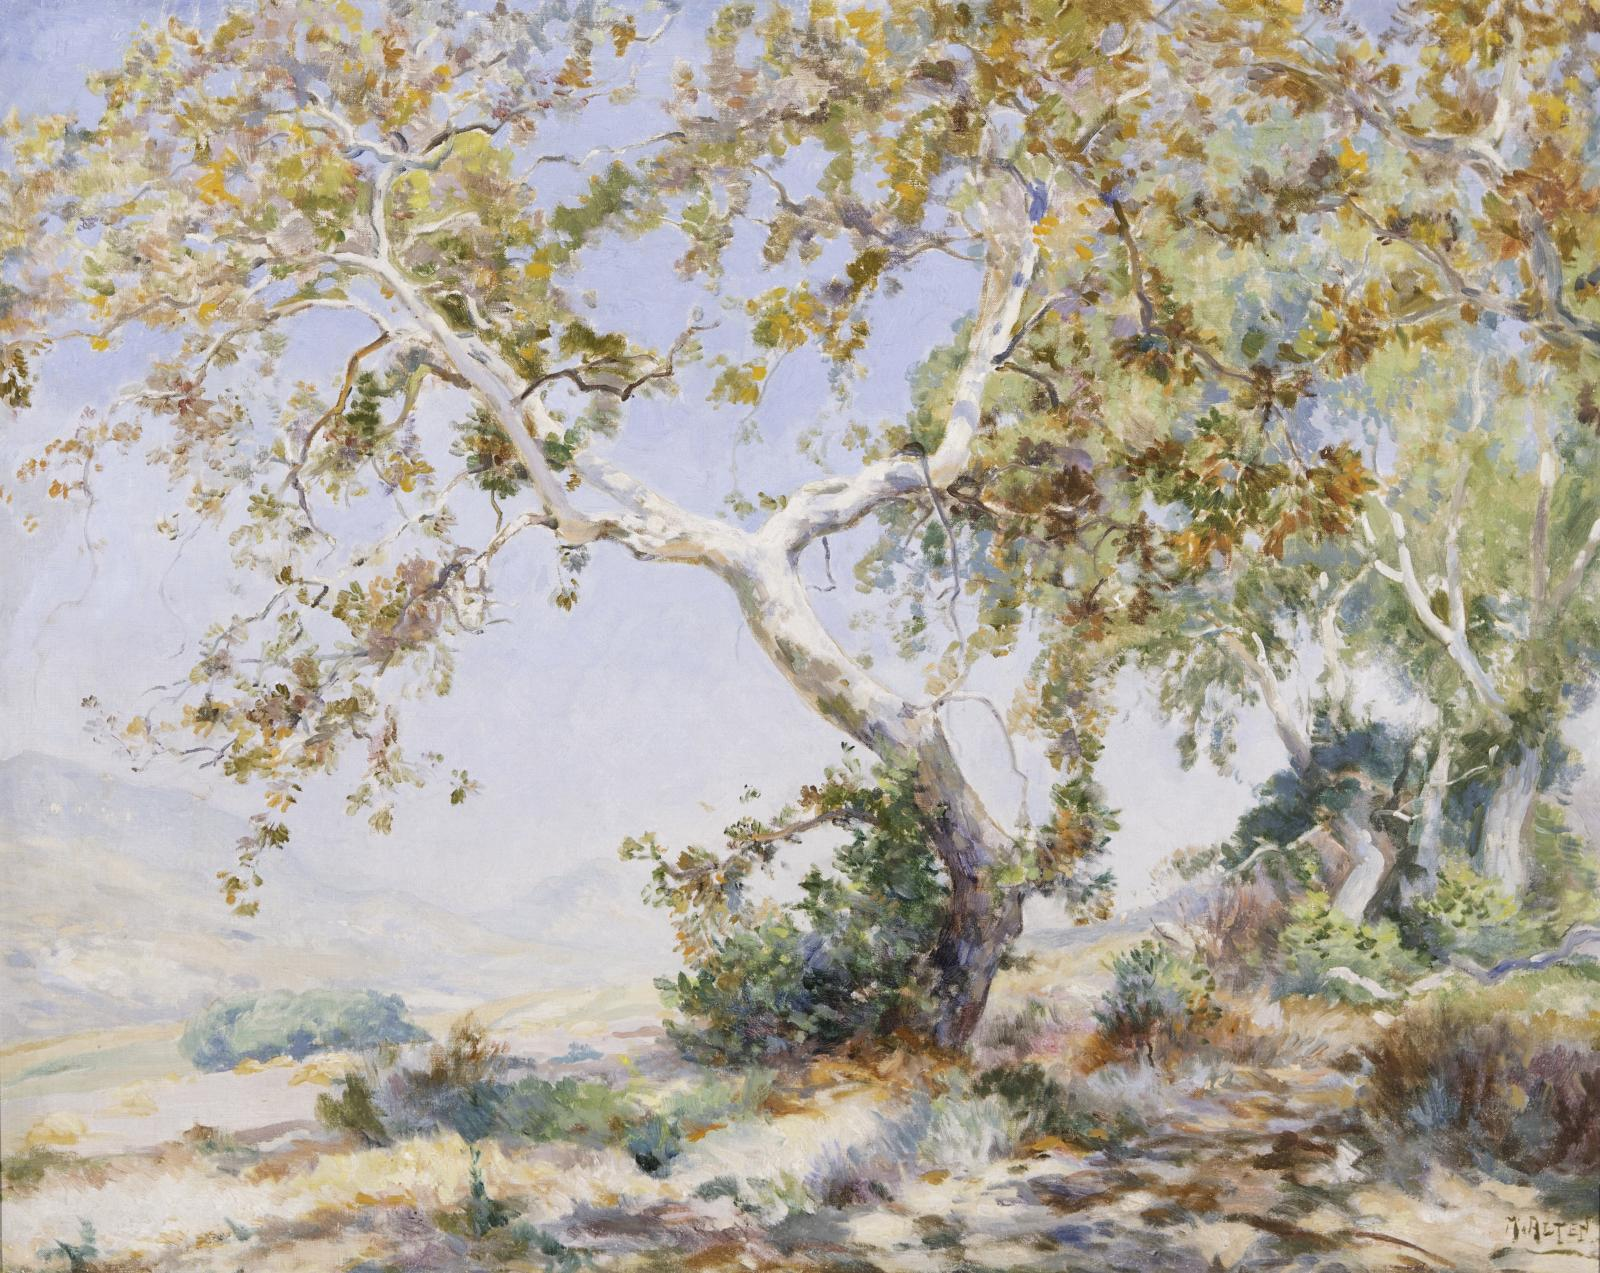 Landscape scene with a Sycamore tree with brown leaves is in the center.